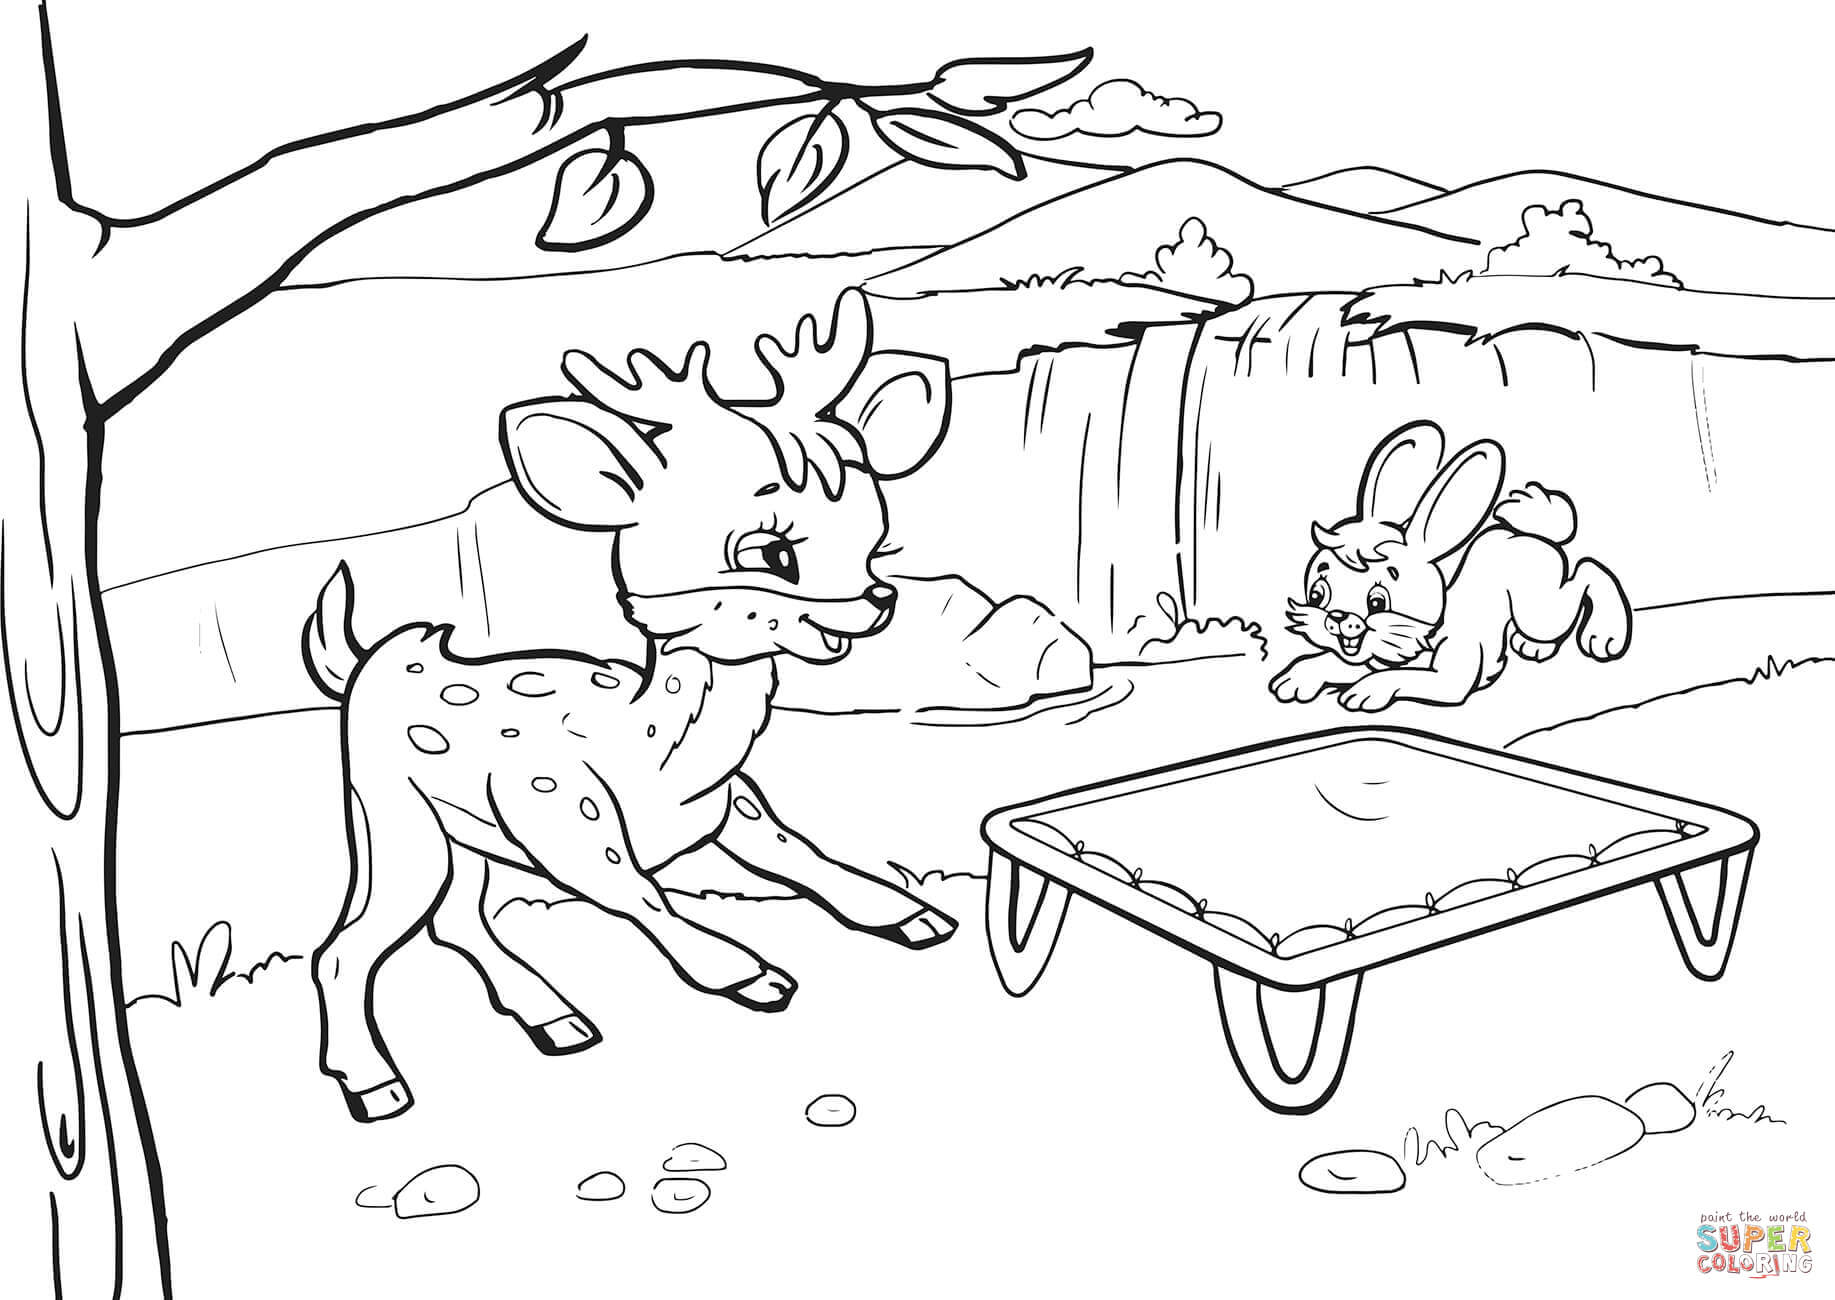 Rabbit And Deer Are Bouncing On A Trampoline Coloring Page